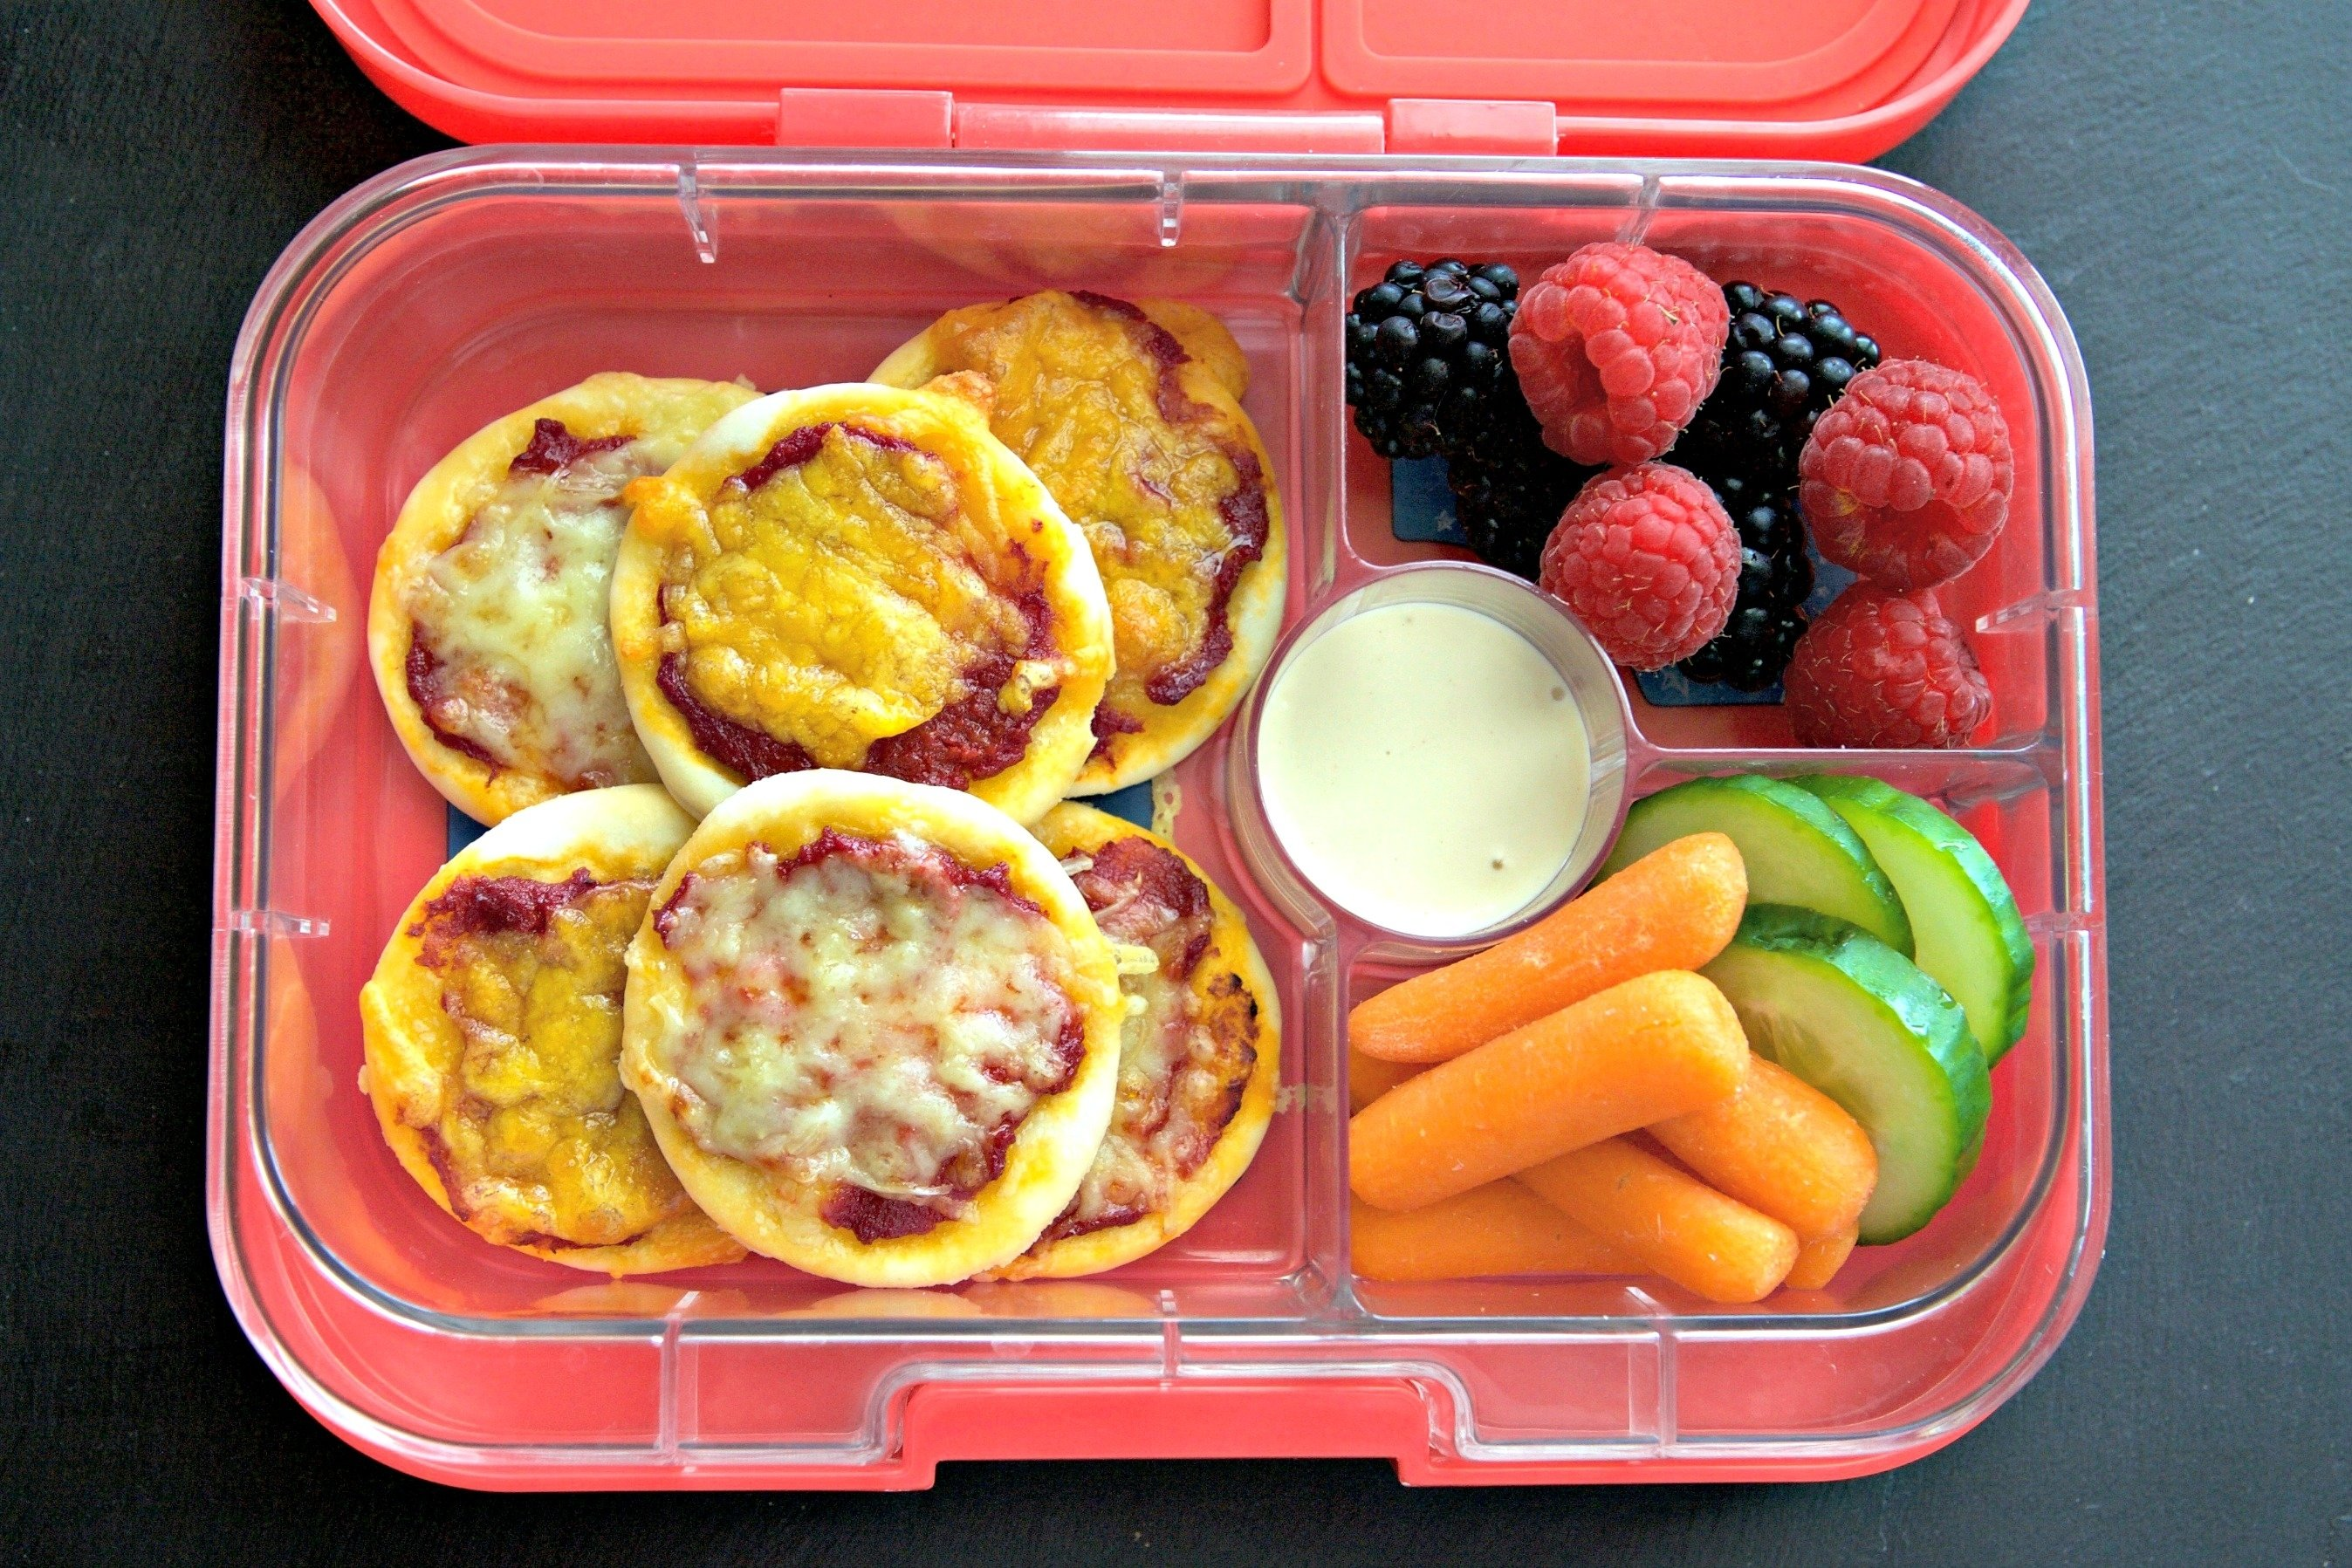 10 Pretty Food Ideas For Picky Eaters mini pizza recipe the perfect picky eater meal yumbox 2020